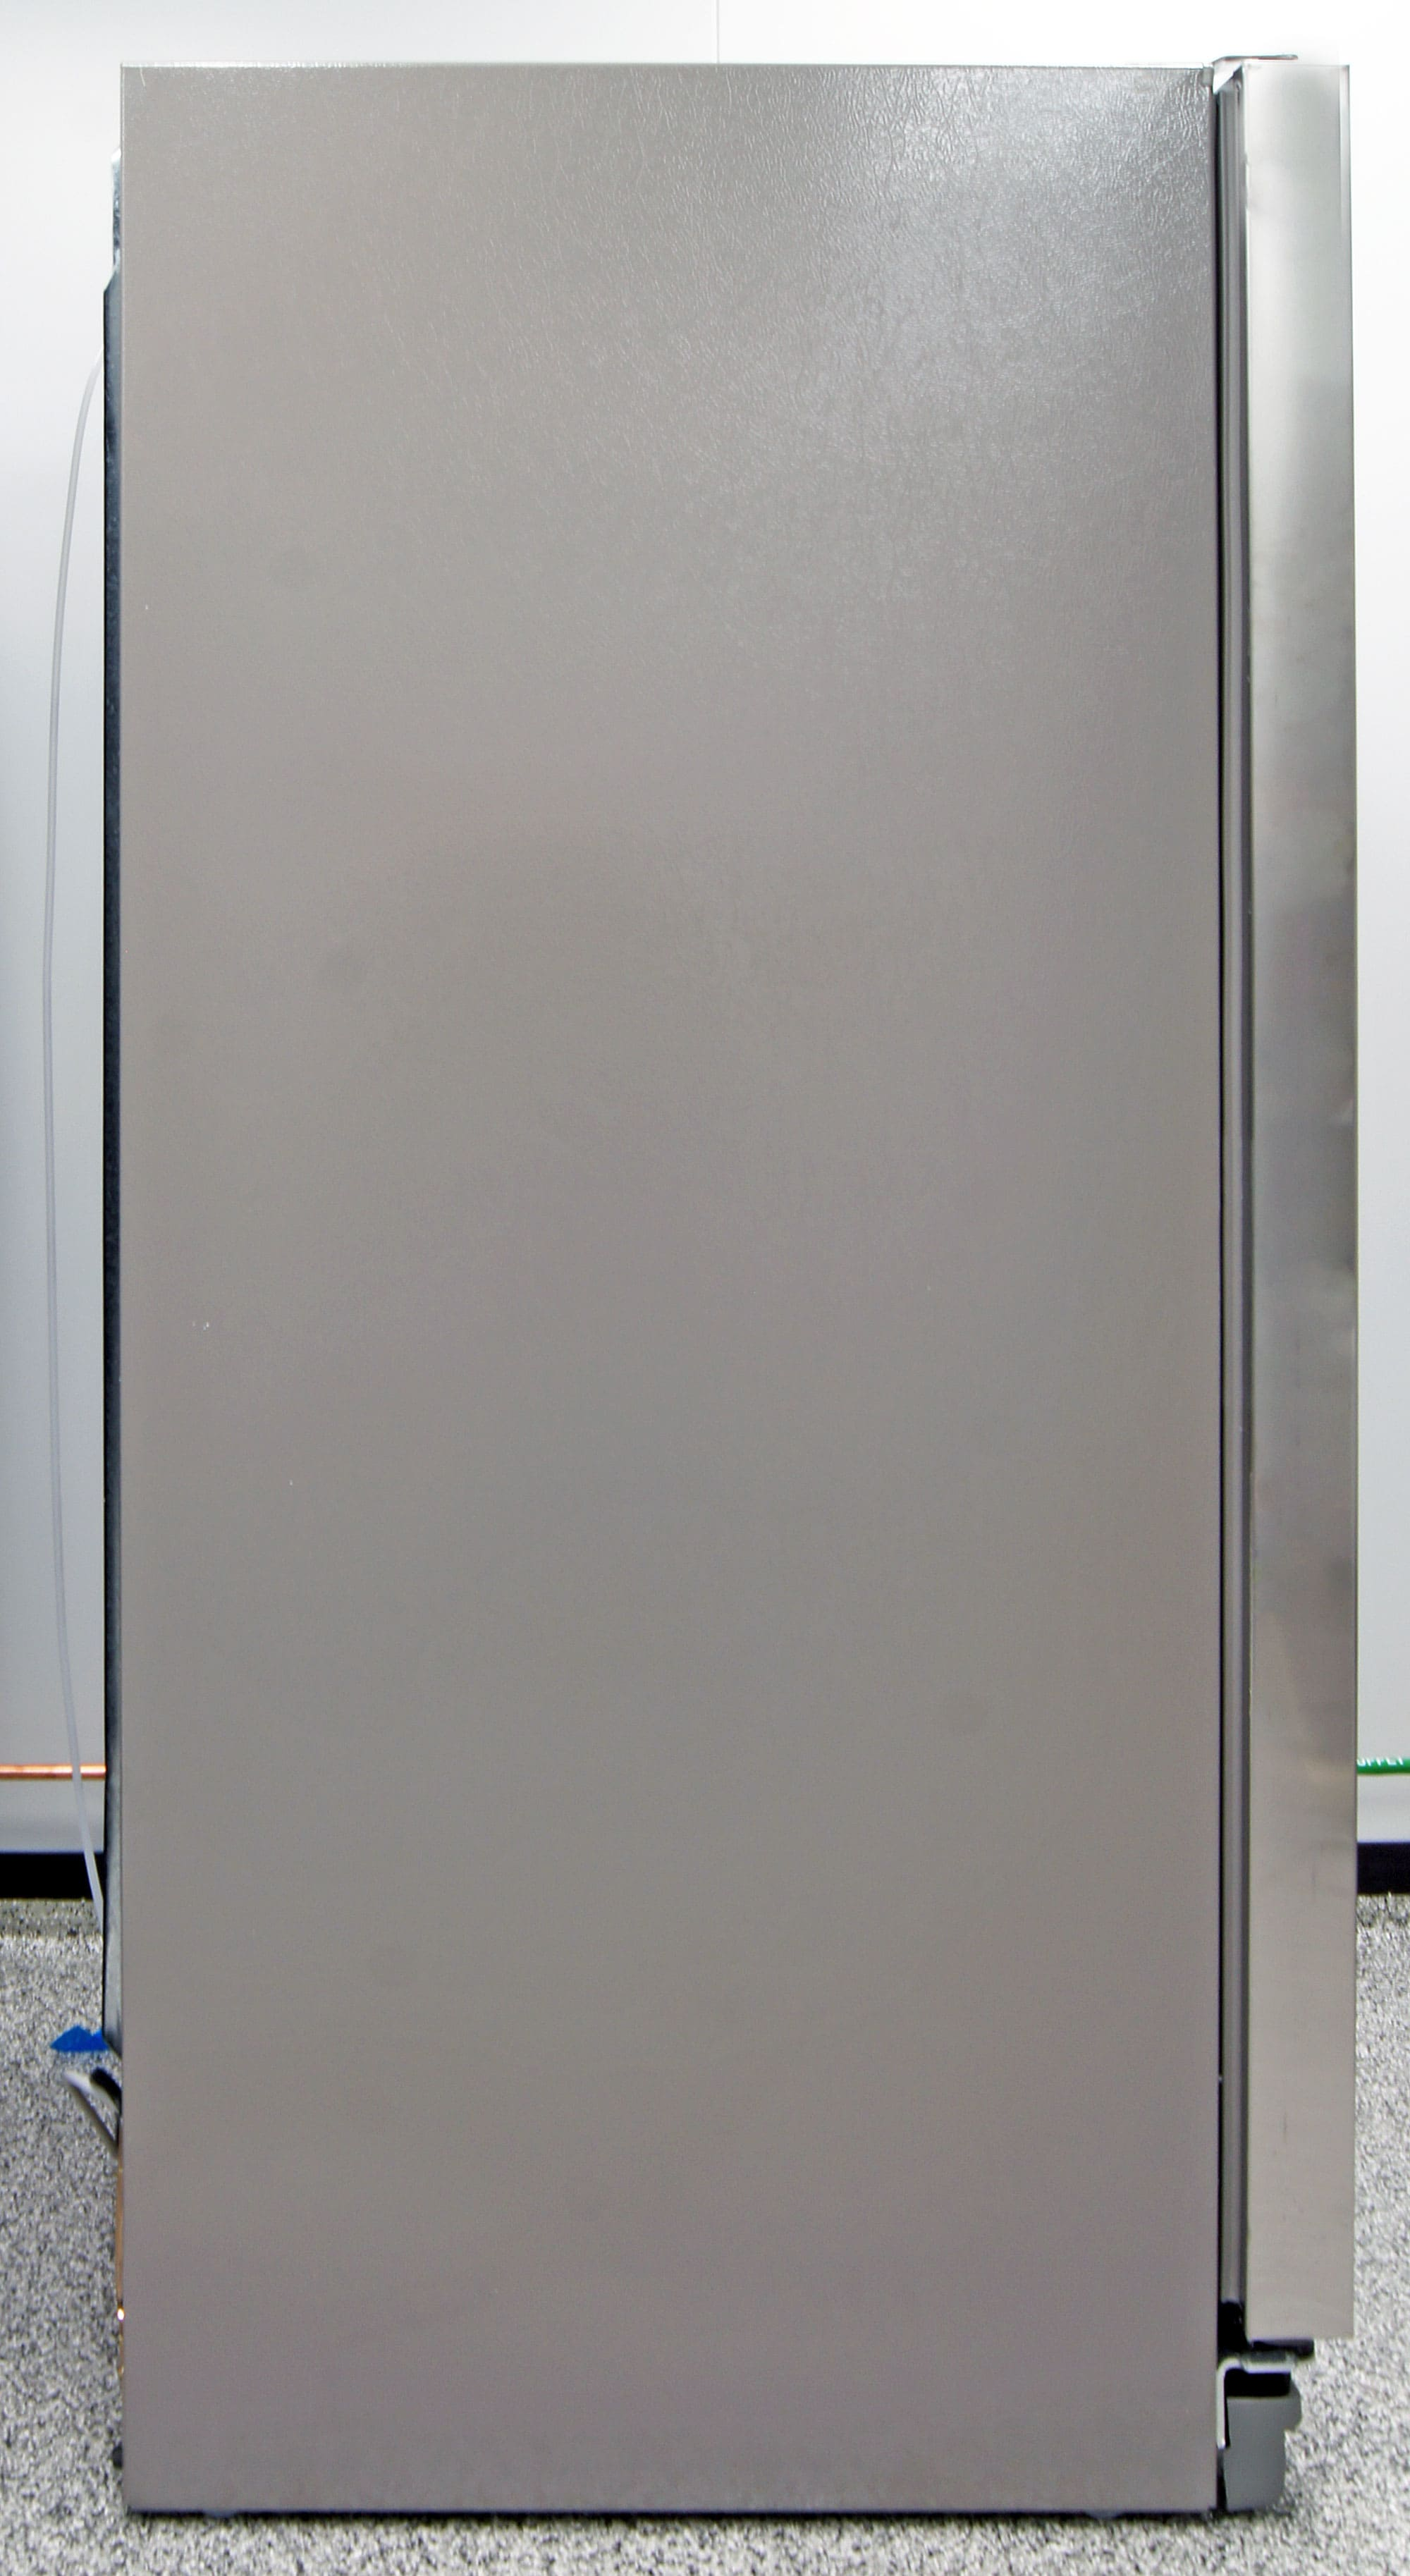 Even though the KitchenAid KSF22C4CYY is only as tall as standard top freezer, it's still a full-depth machine.